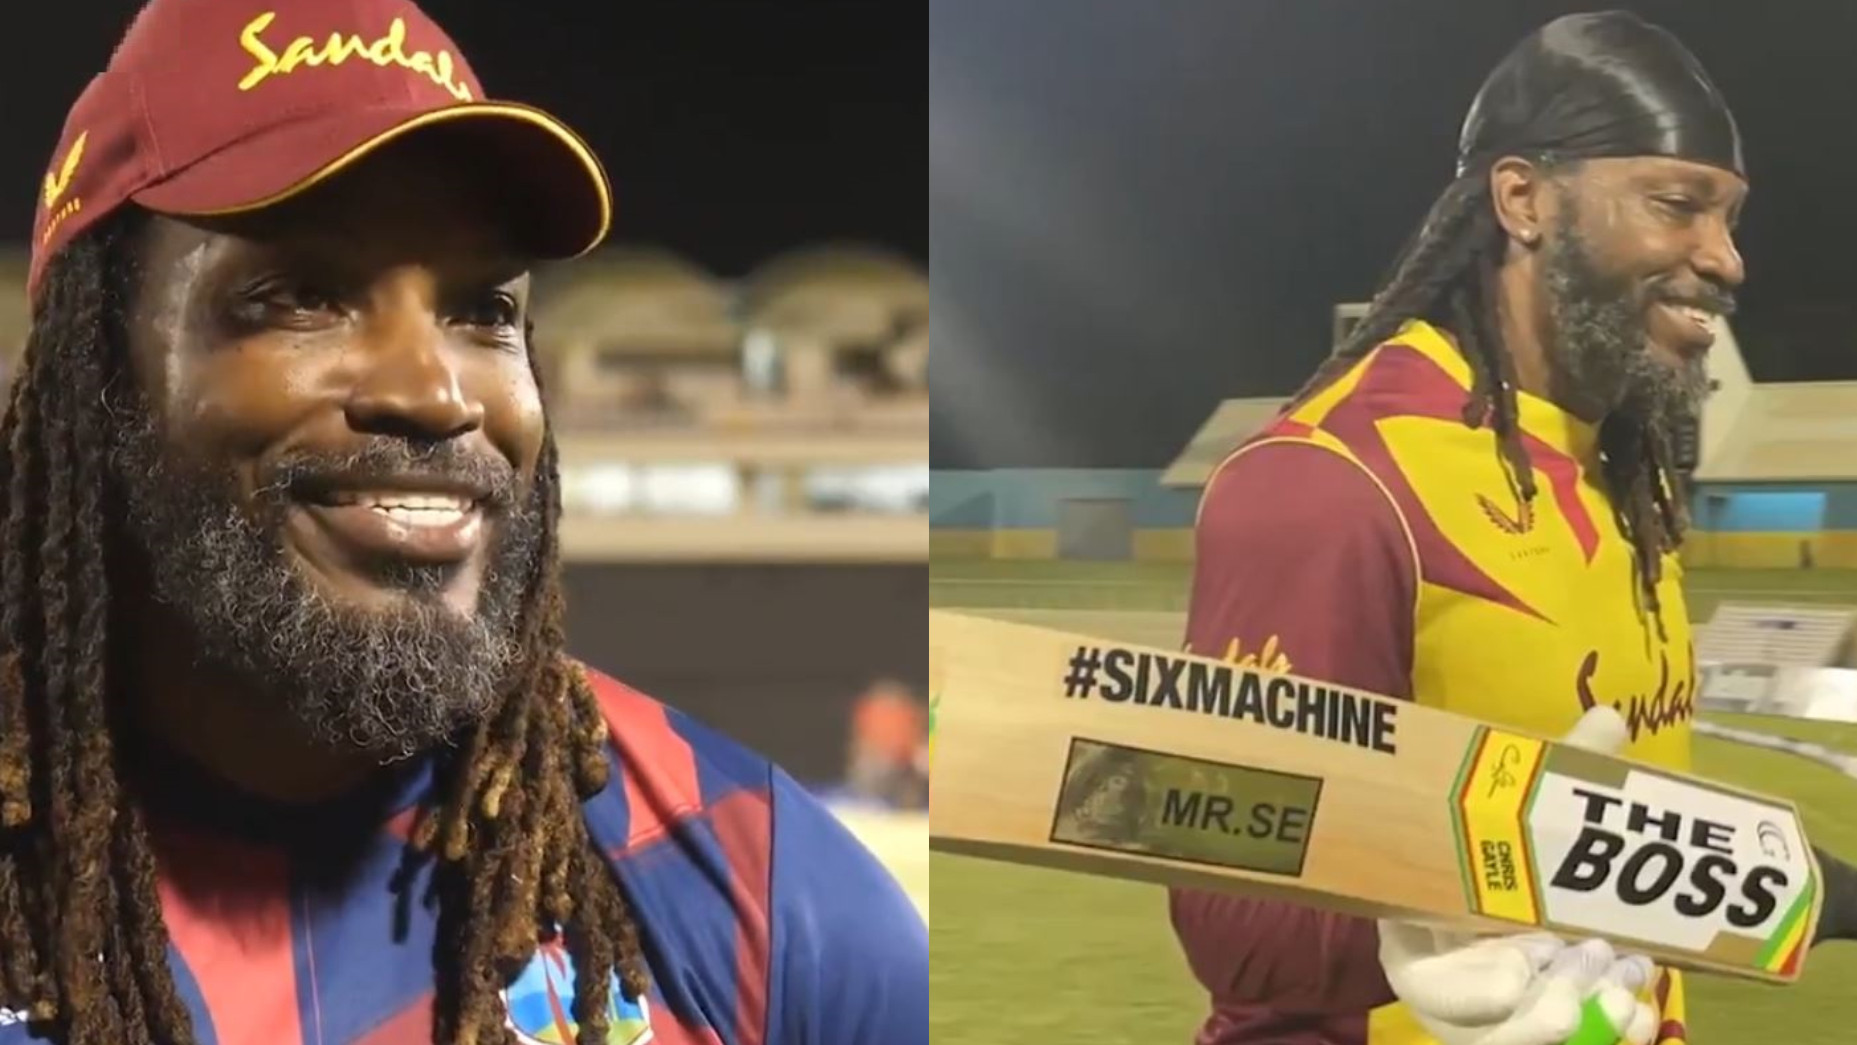 WI v AUS 2021: WATCH- 'The Boss' Chris Gayle jokingly says ICC doesn't want him using Universe Boss on his bat